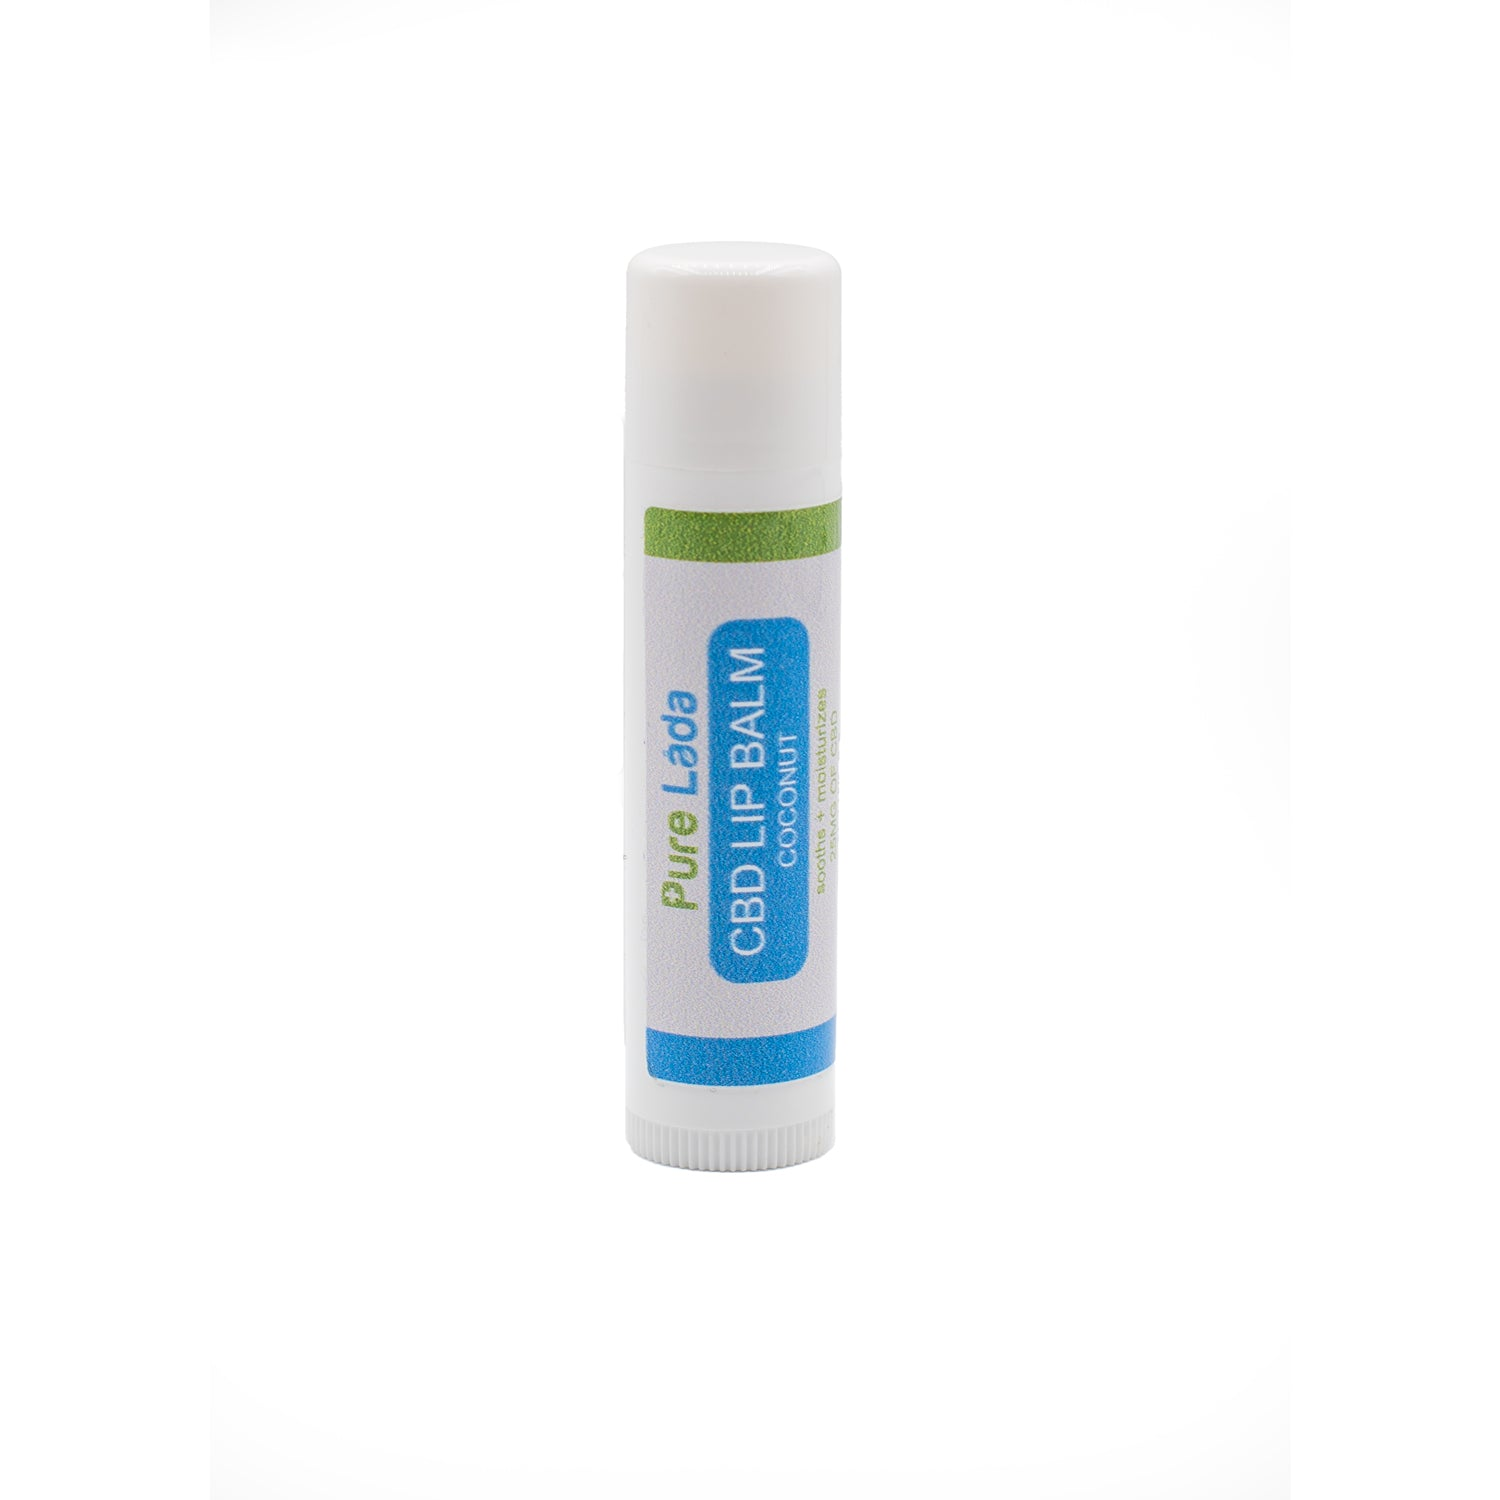 25 mg CBD Lip Balm - Coconut Flavor